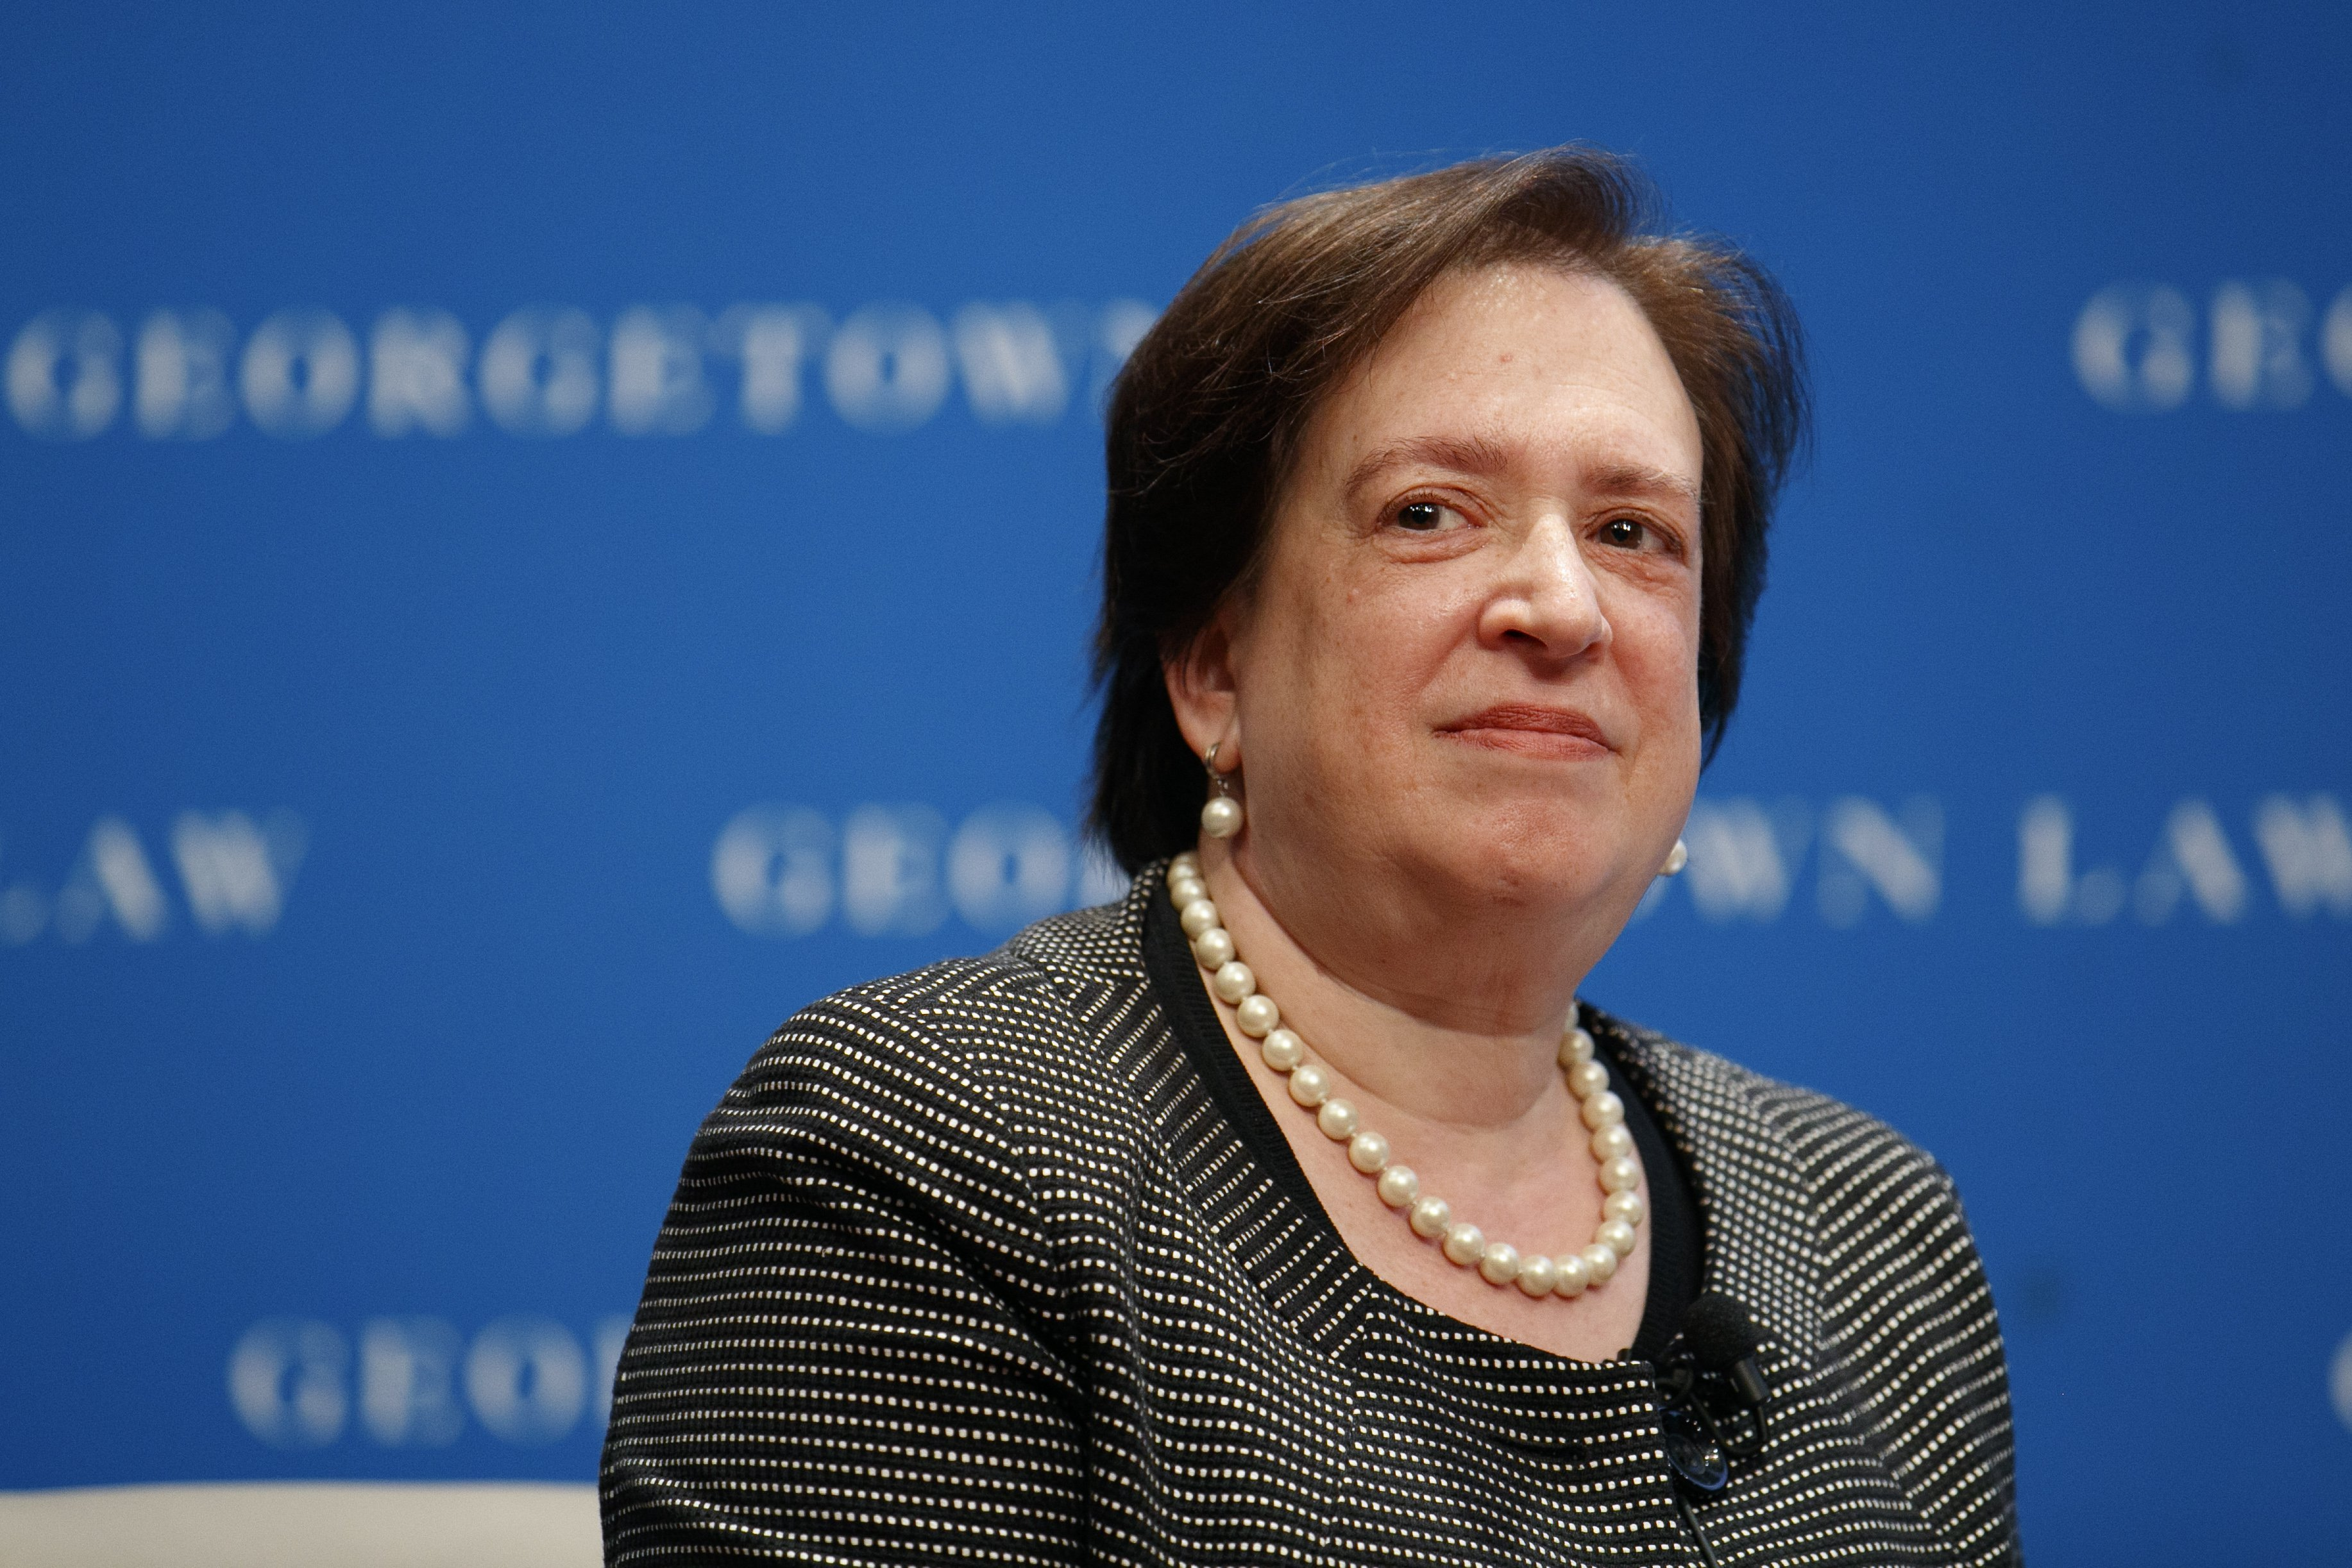 Justice Elena Kagan uses Spider-Man to warn of Supreme Court's 'great responsibility' to follow precedent